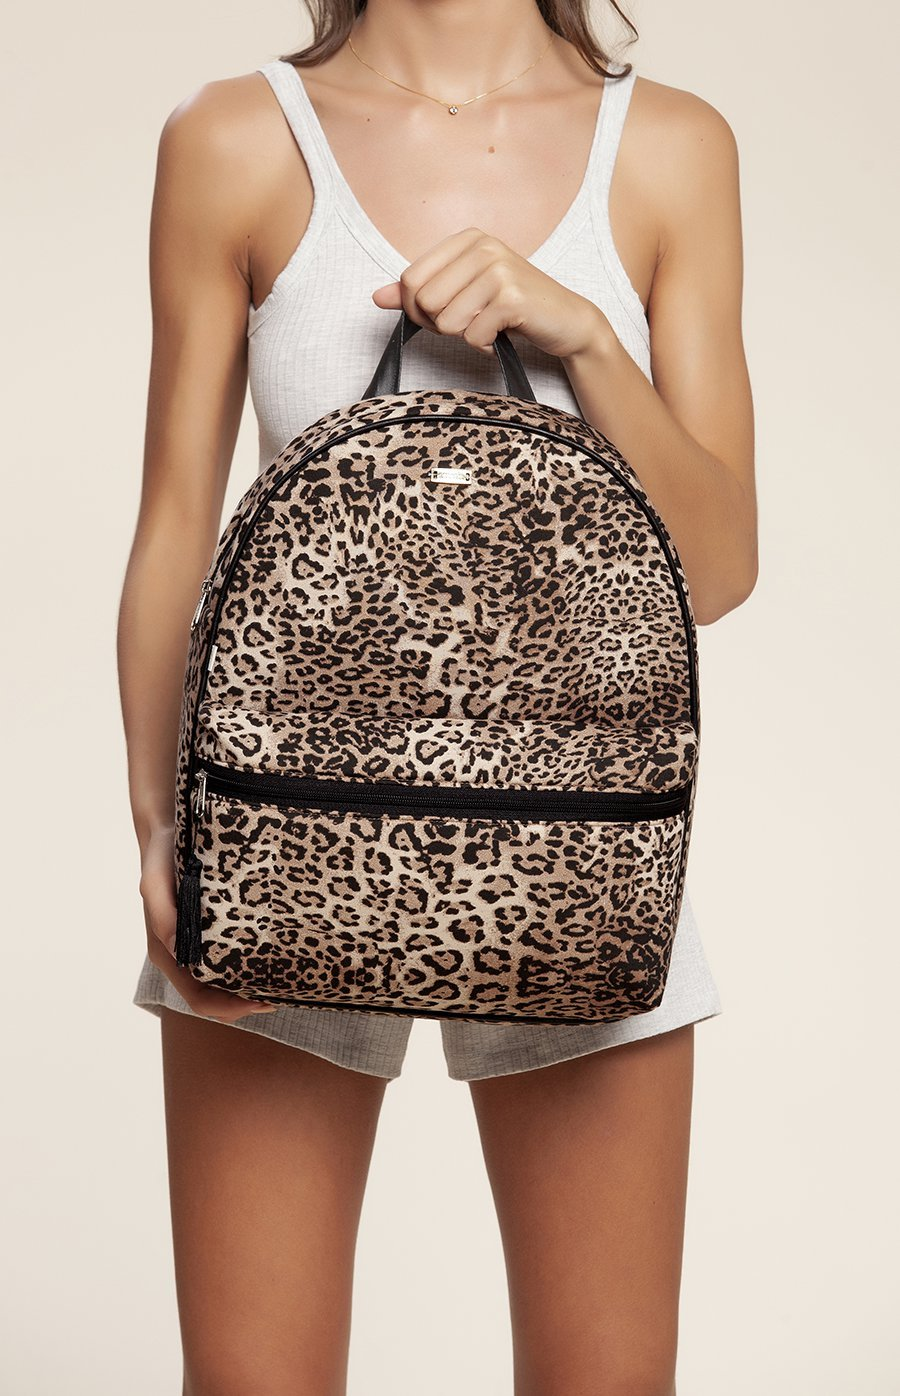 LIQUIDA Mochila I Love It Verão 2020 MIAMI DREAMS